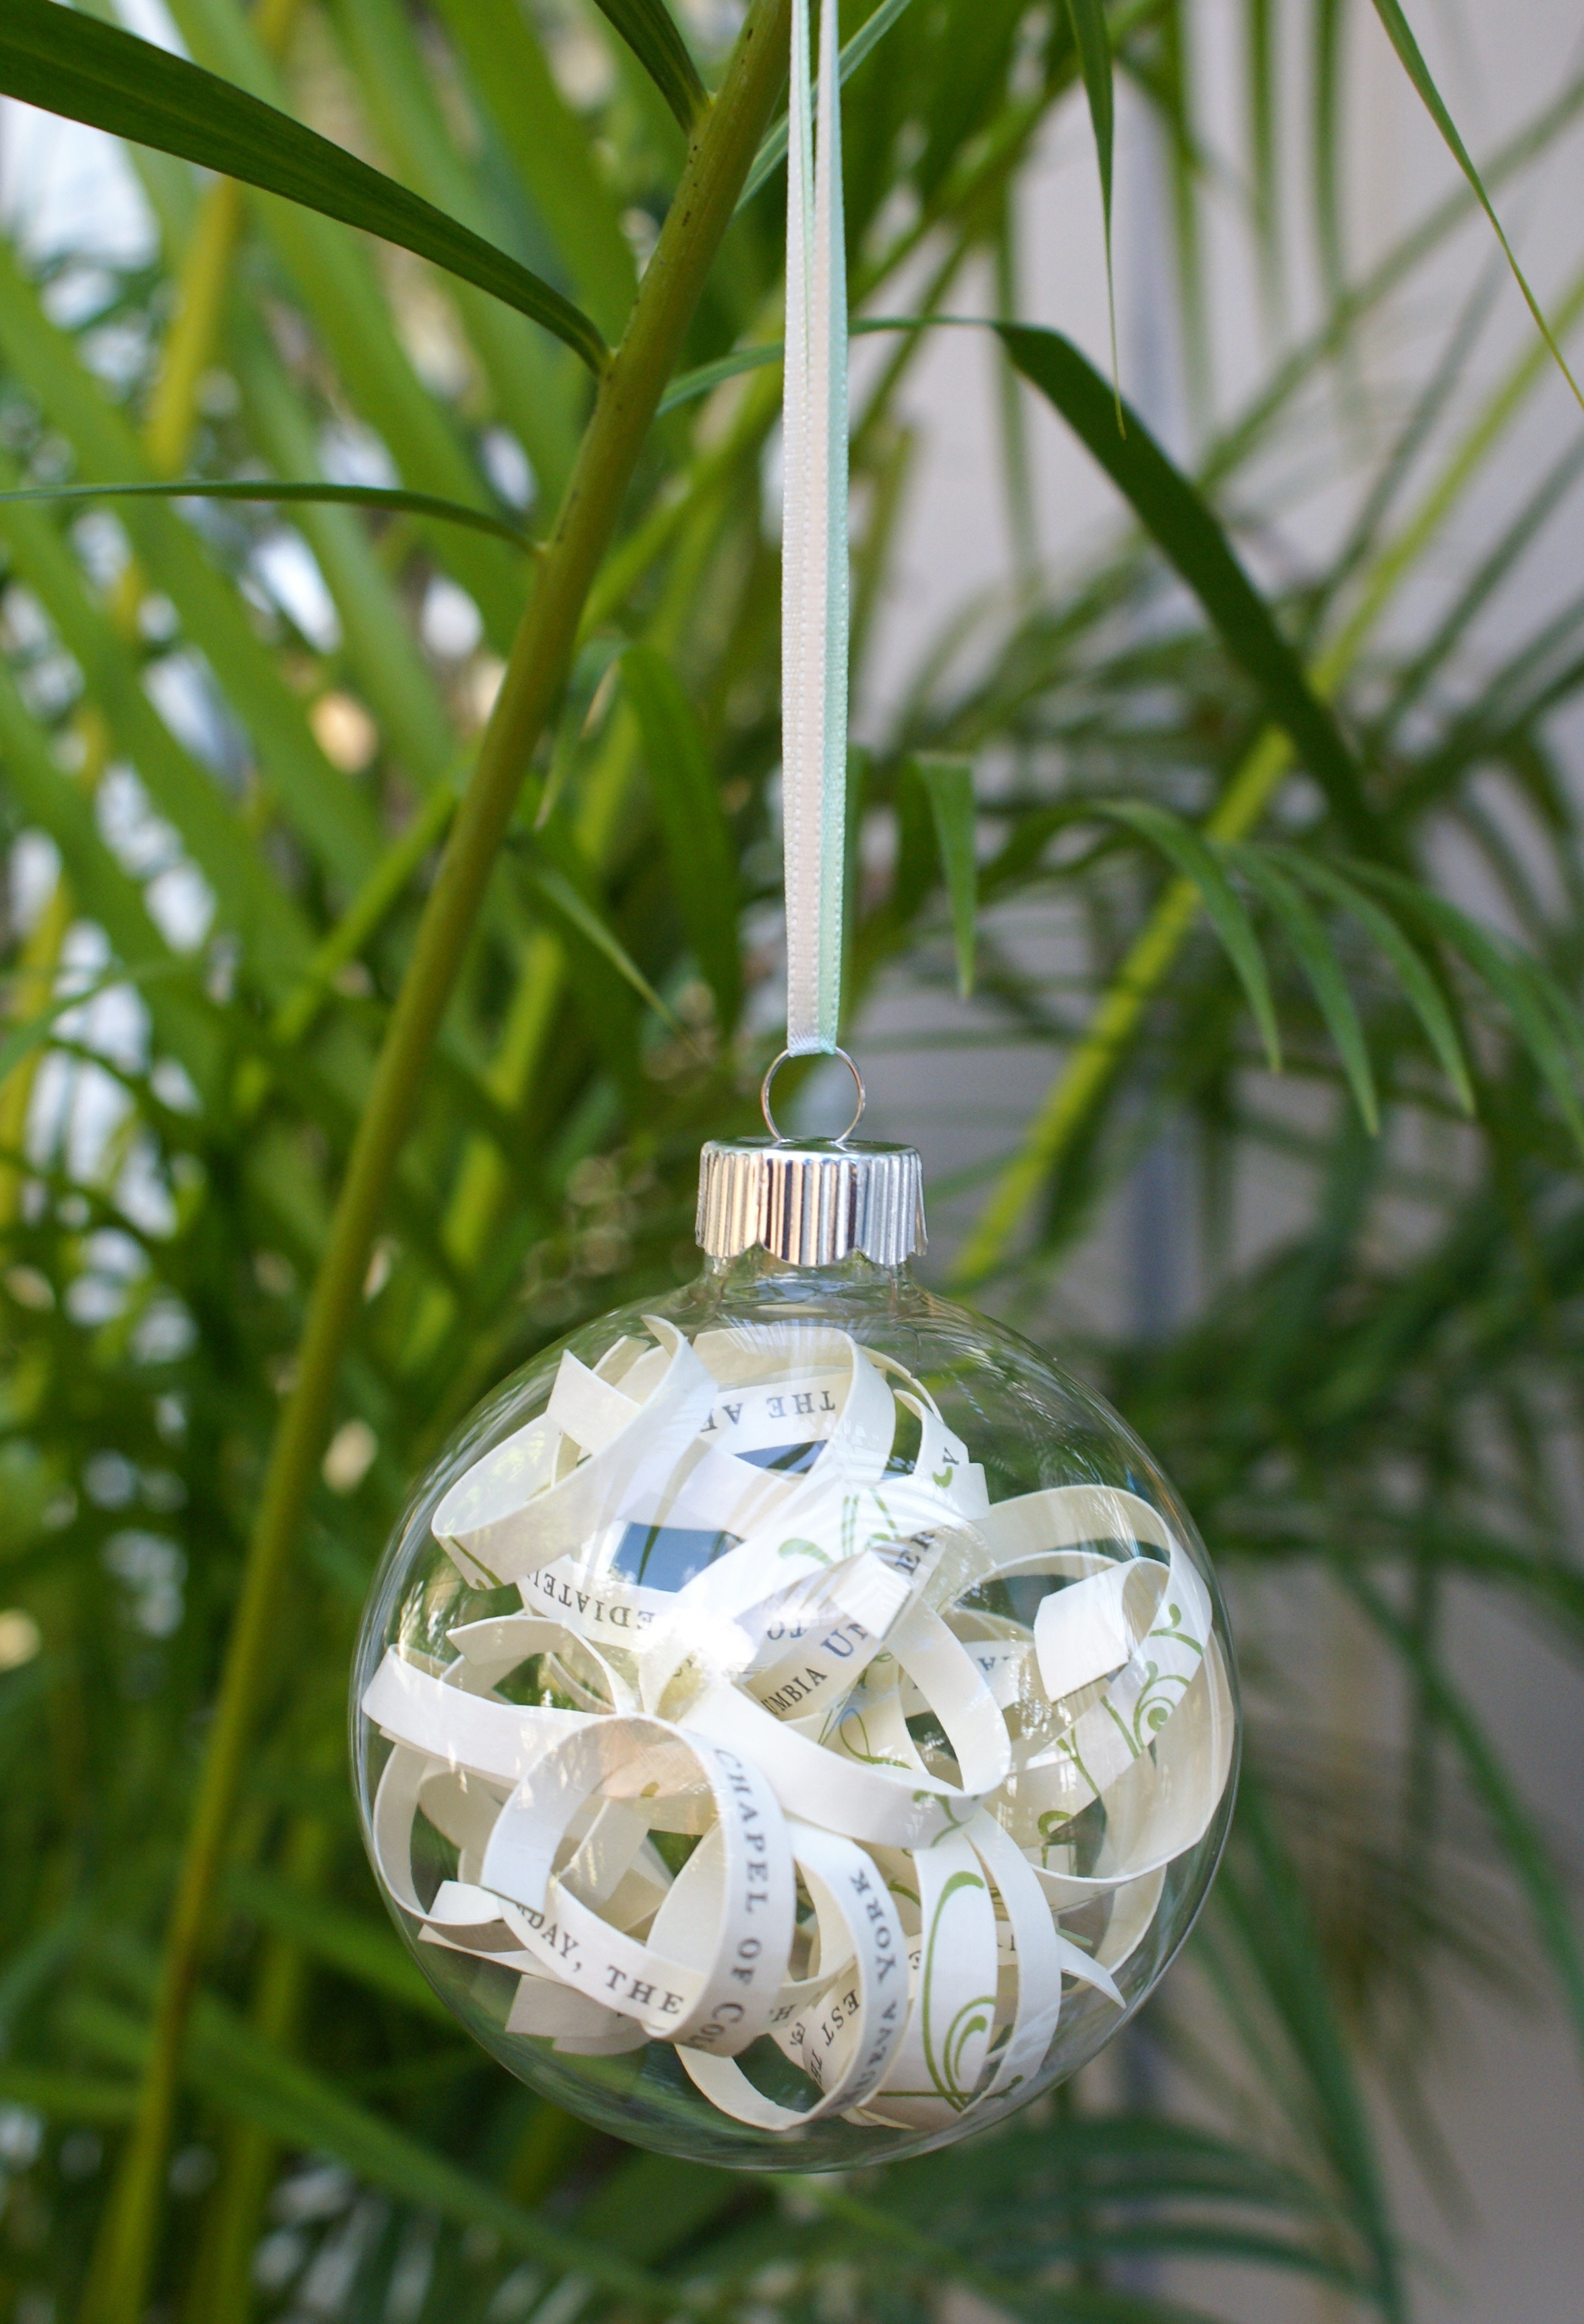 Diy wedding invitation ornament the thinking closet diy wedding invitation ornament via the thinking closet stopboris Images